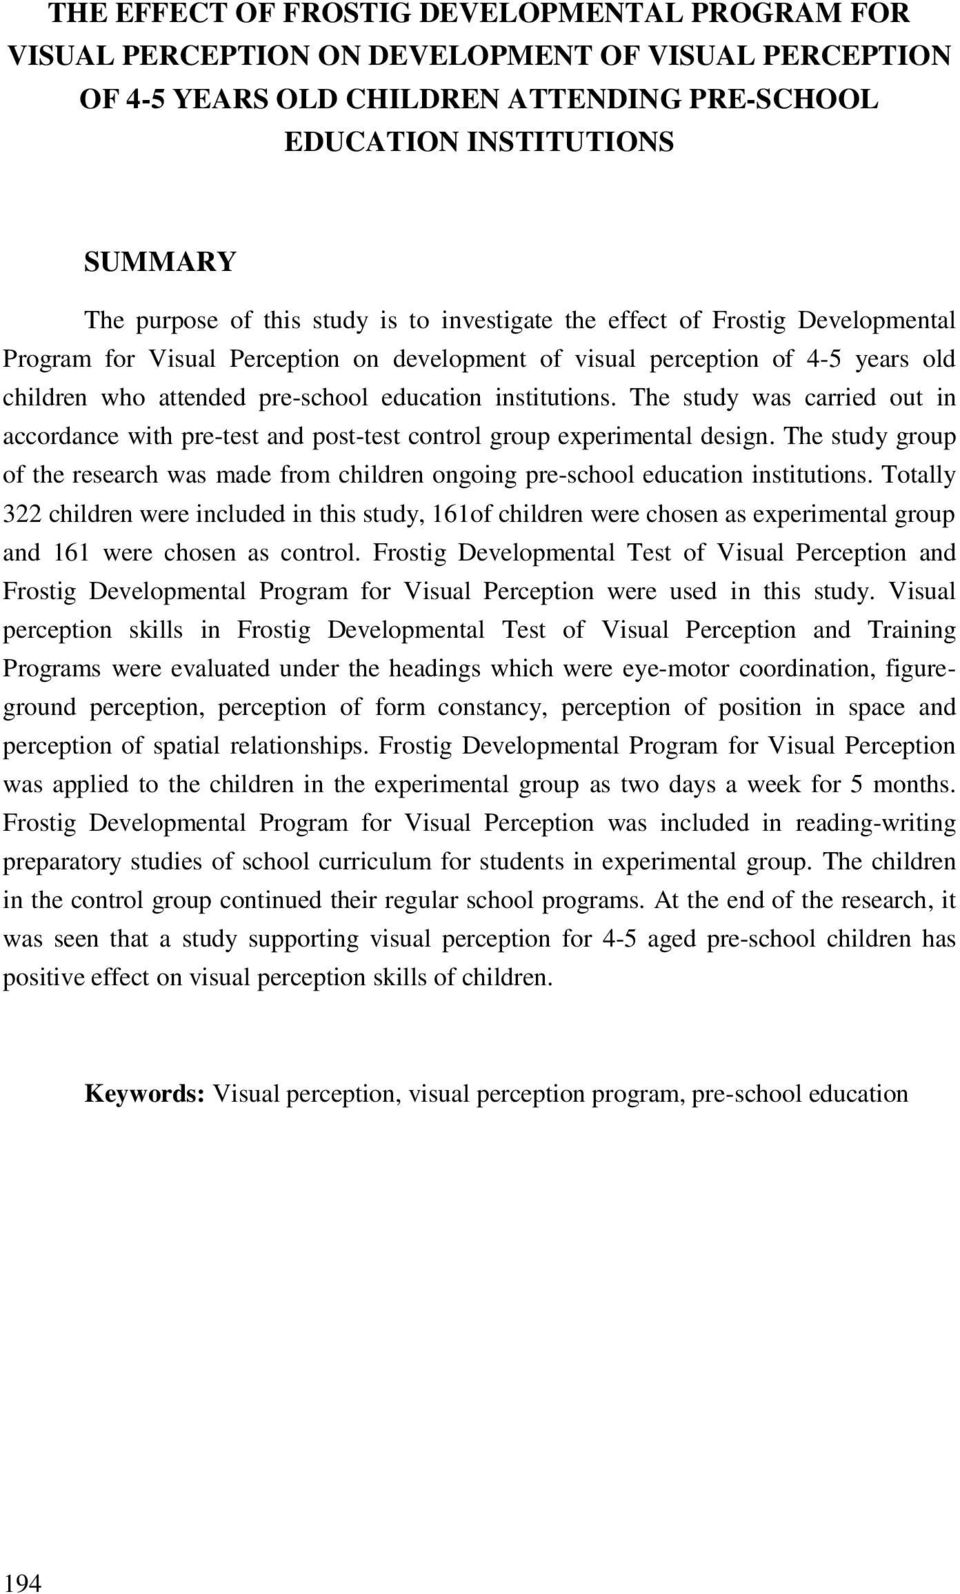 The study was carried out in accordance with pre-test and post-test control group experimental design. The study group of the research was made from children ongoing pre-school education institutions.